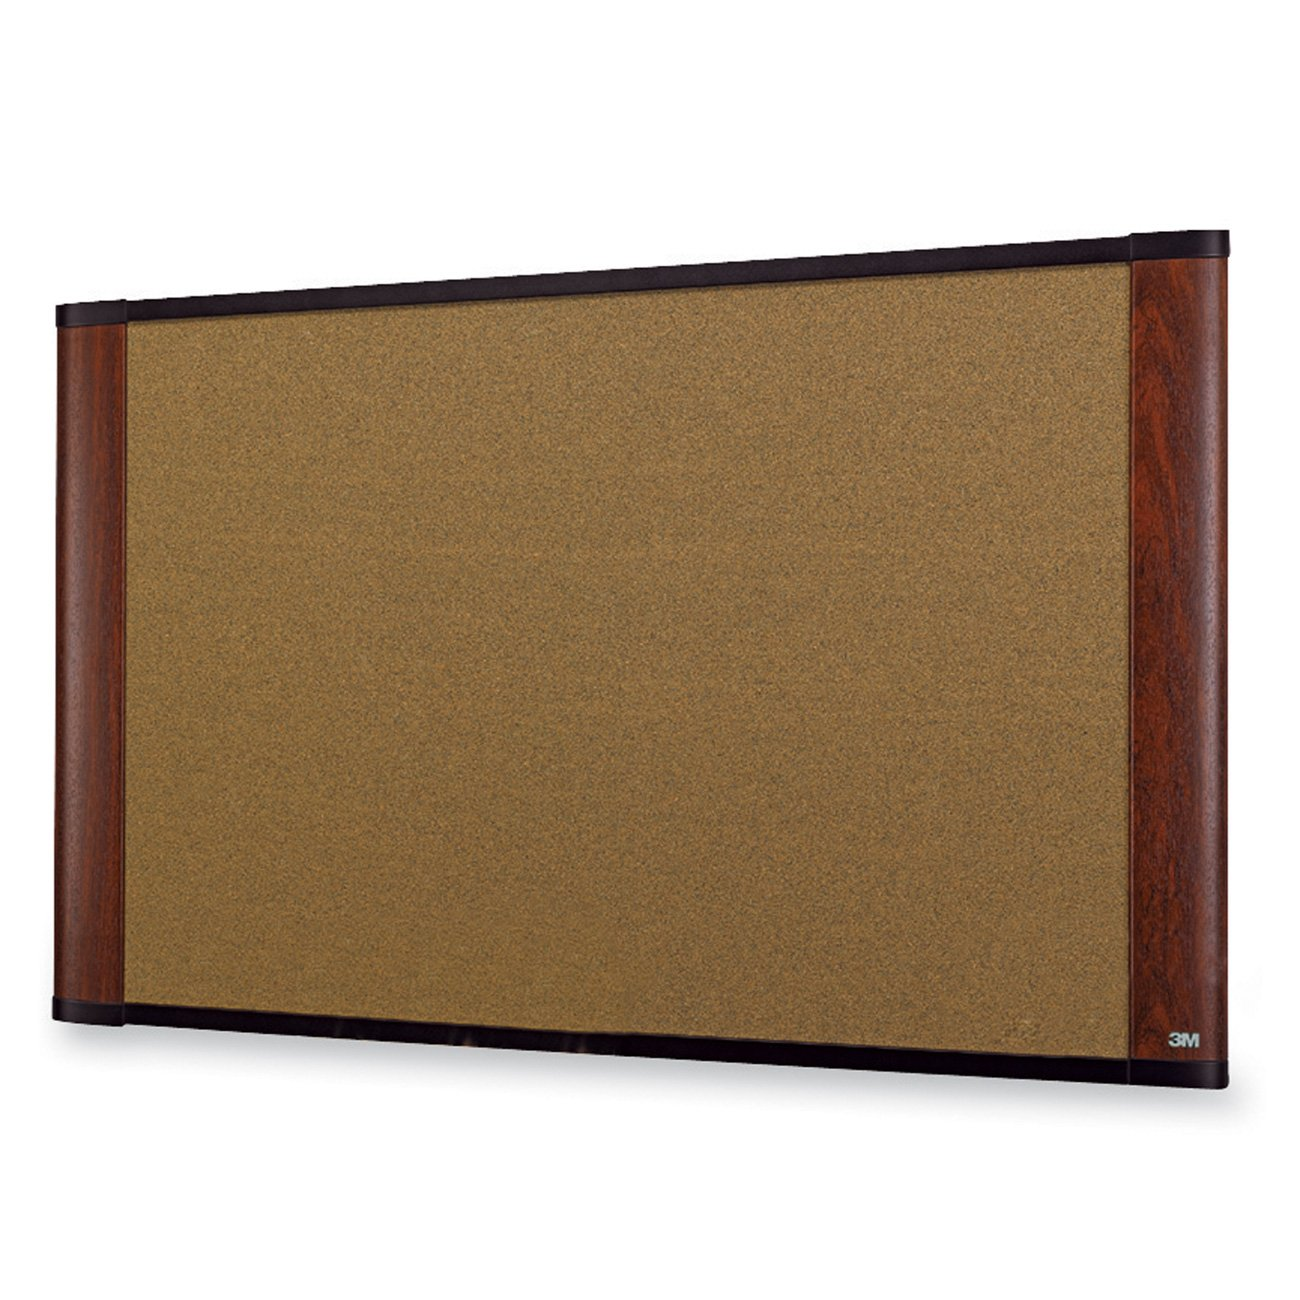 3M 36 x 24 Cork Board, Mahogany Finish Frame (C3624MY)